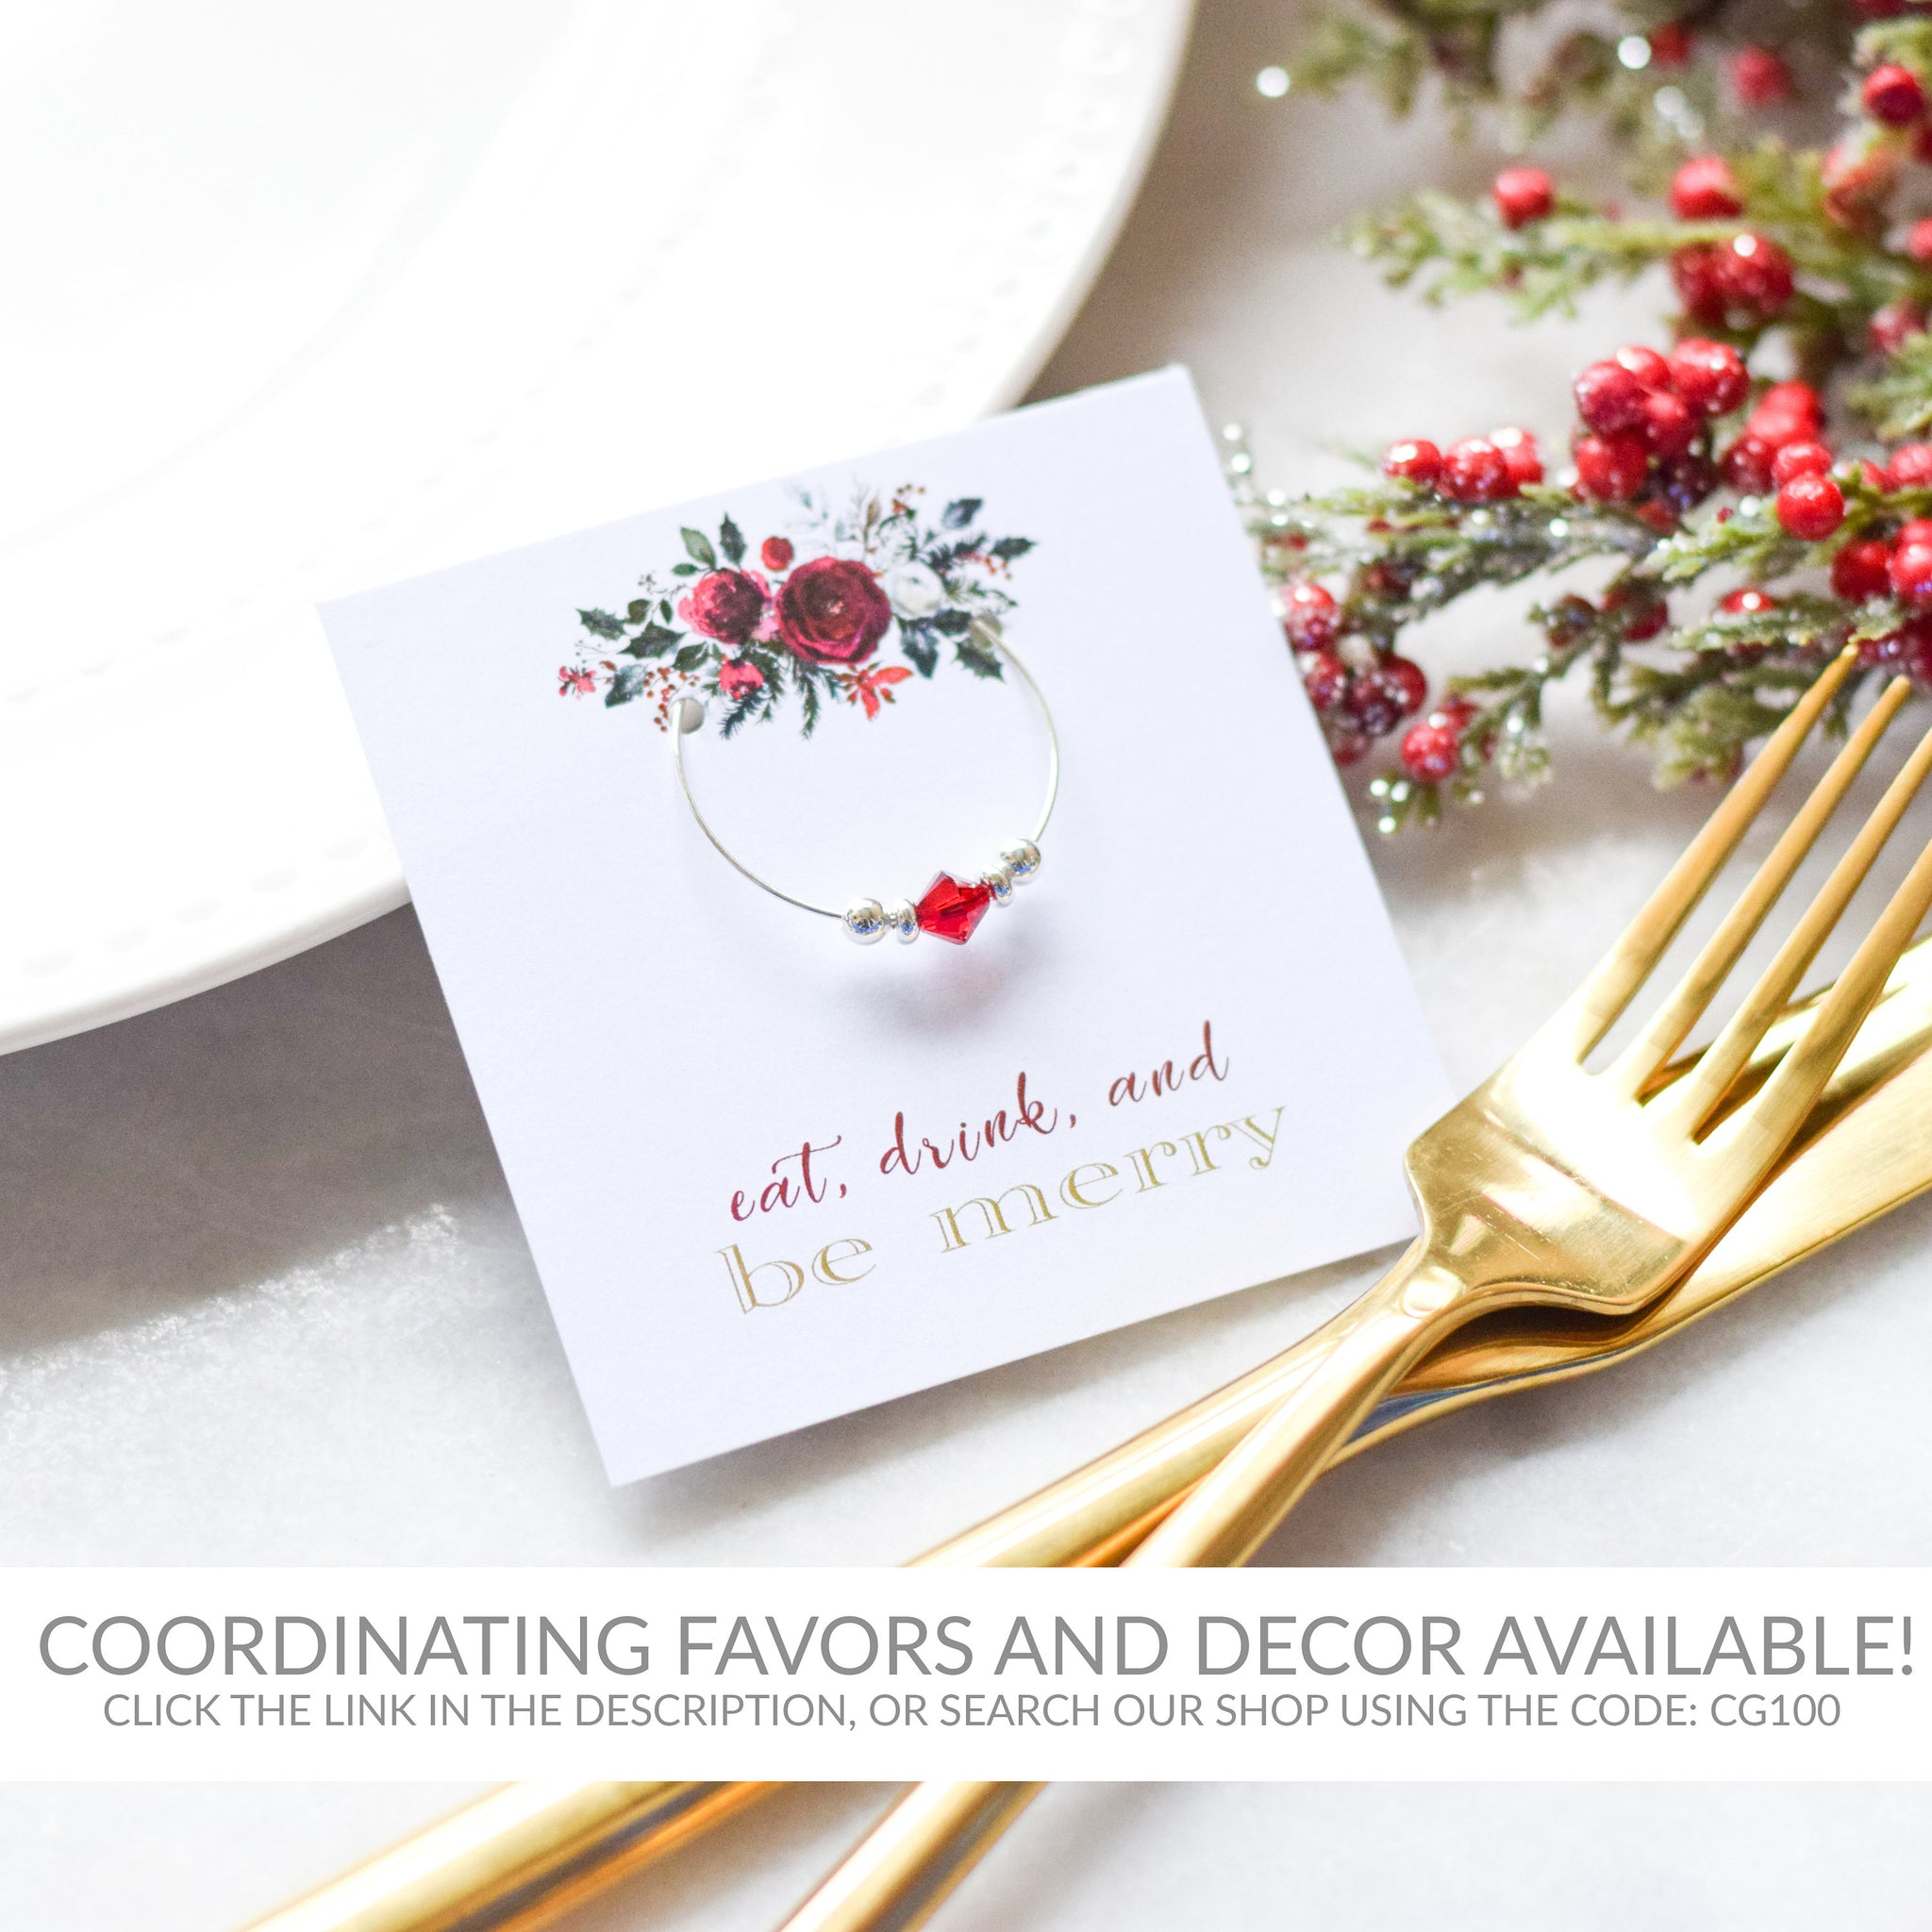 Christmas Baby Shower Addressee Sign Printable, Address an Envelope Sign, Winter Baby Shower Decorations, INSTANT DOWNLOAD - CG100 - @PlumPolkaDot